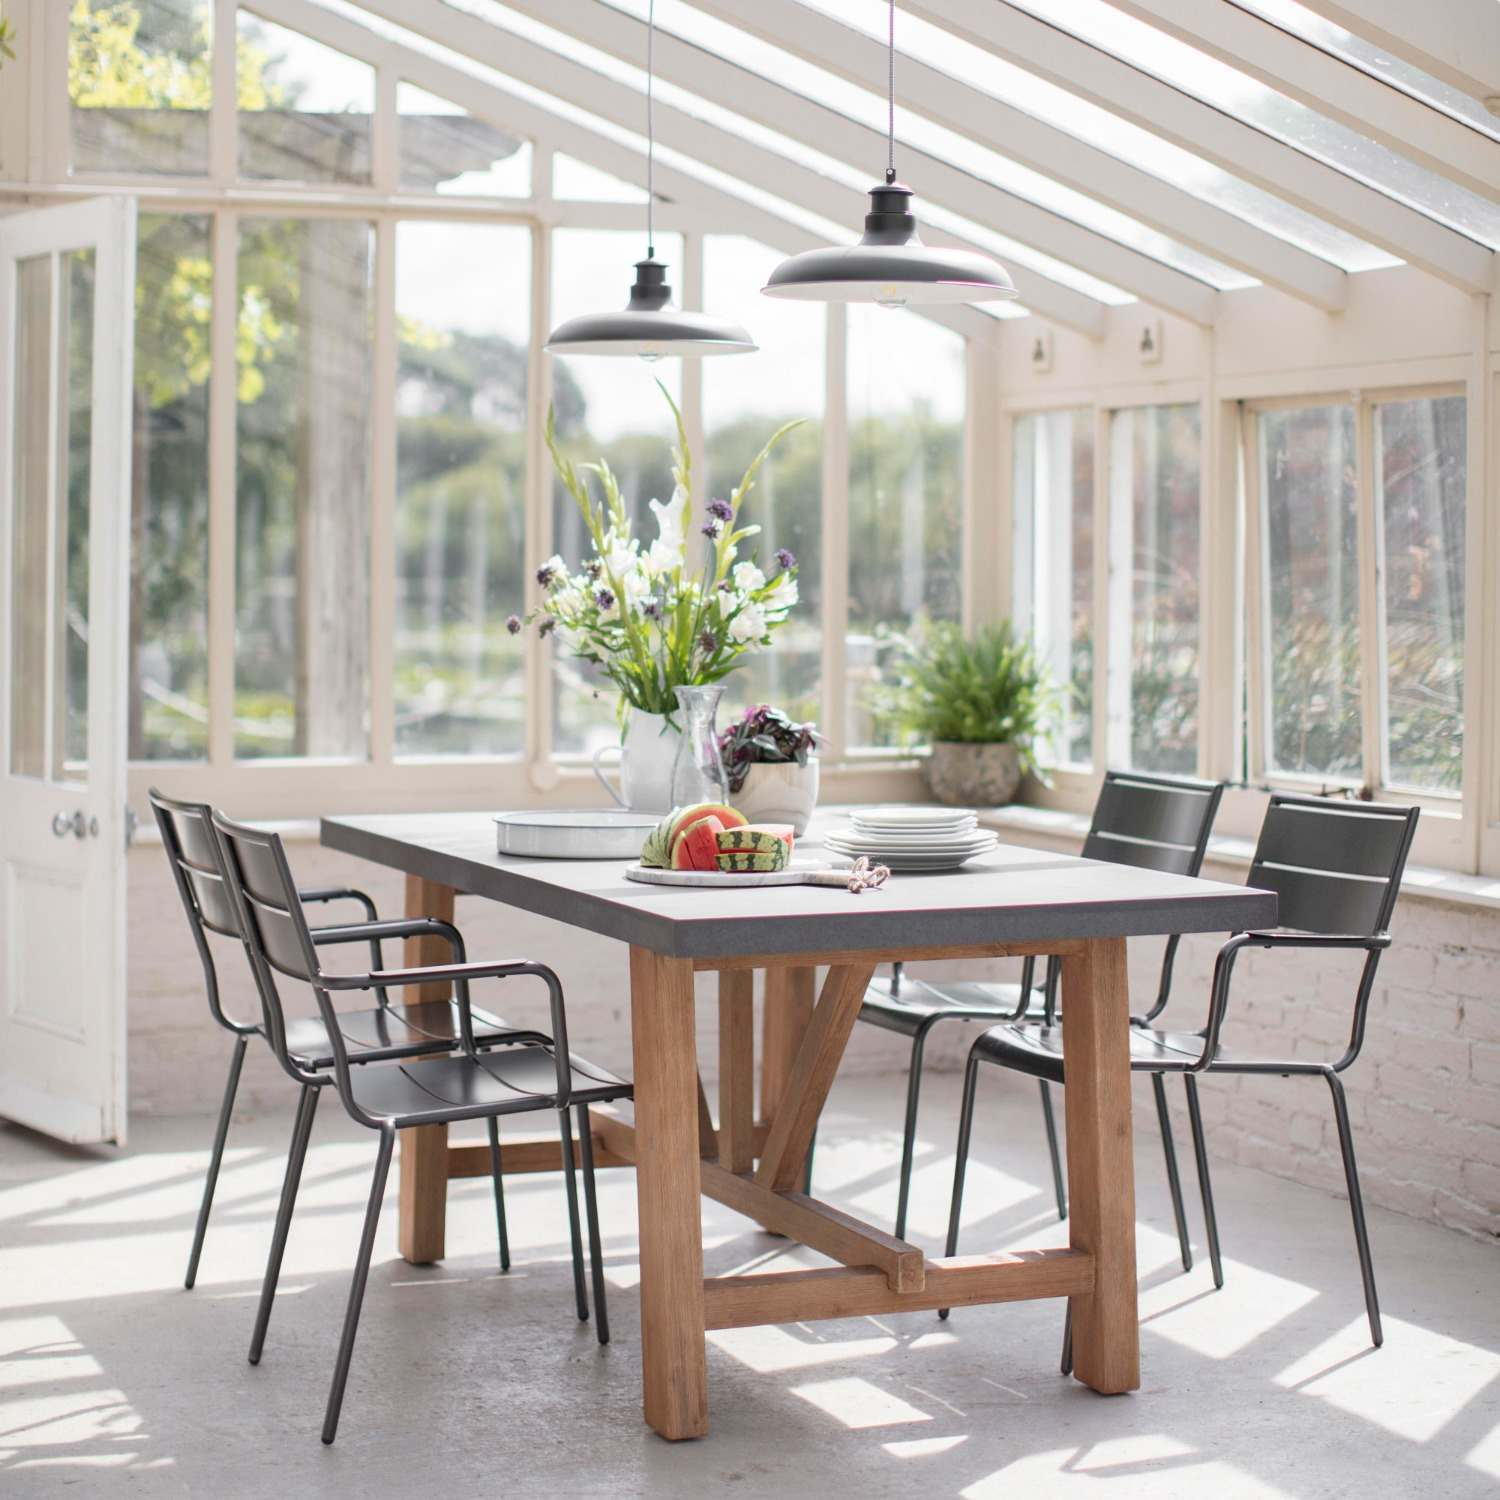 An image of Arden Dining Tables